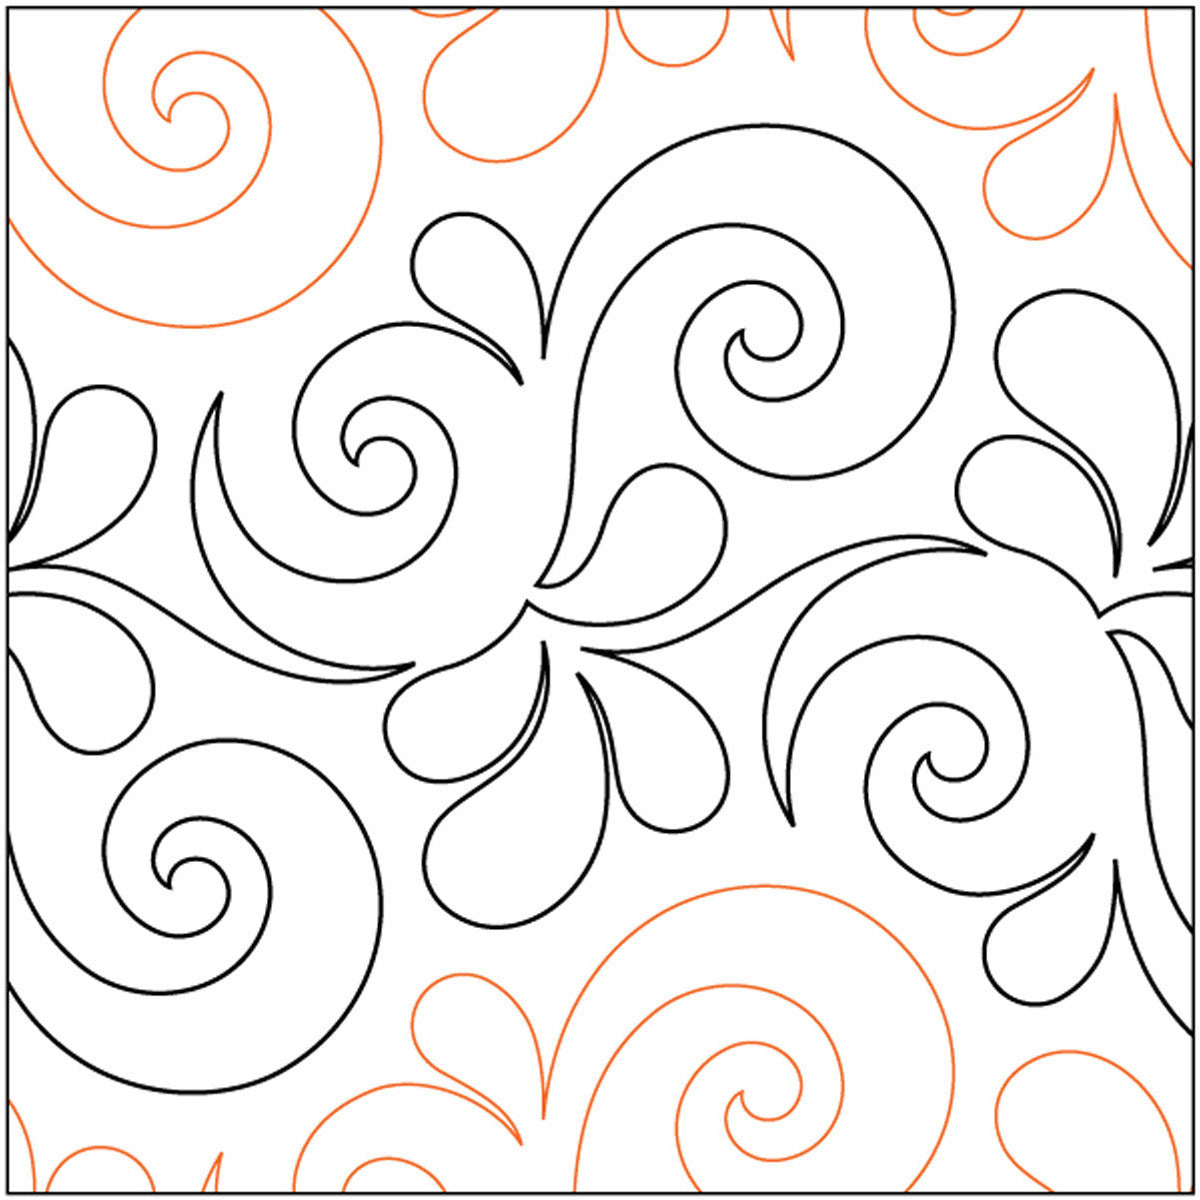 Quilt Stencils By Patricia Ritter Wave On Wave 9in - Quilting-Warehouse